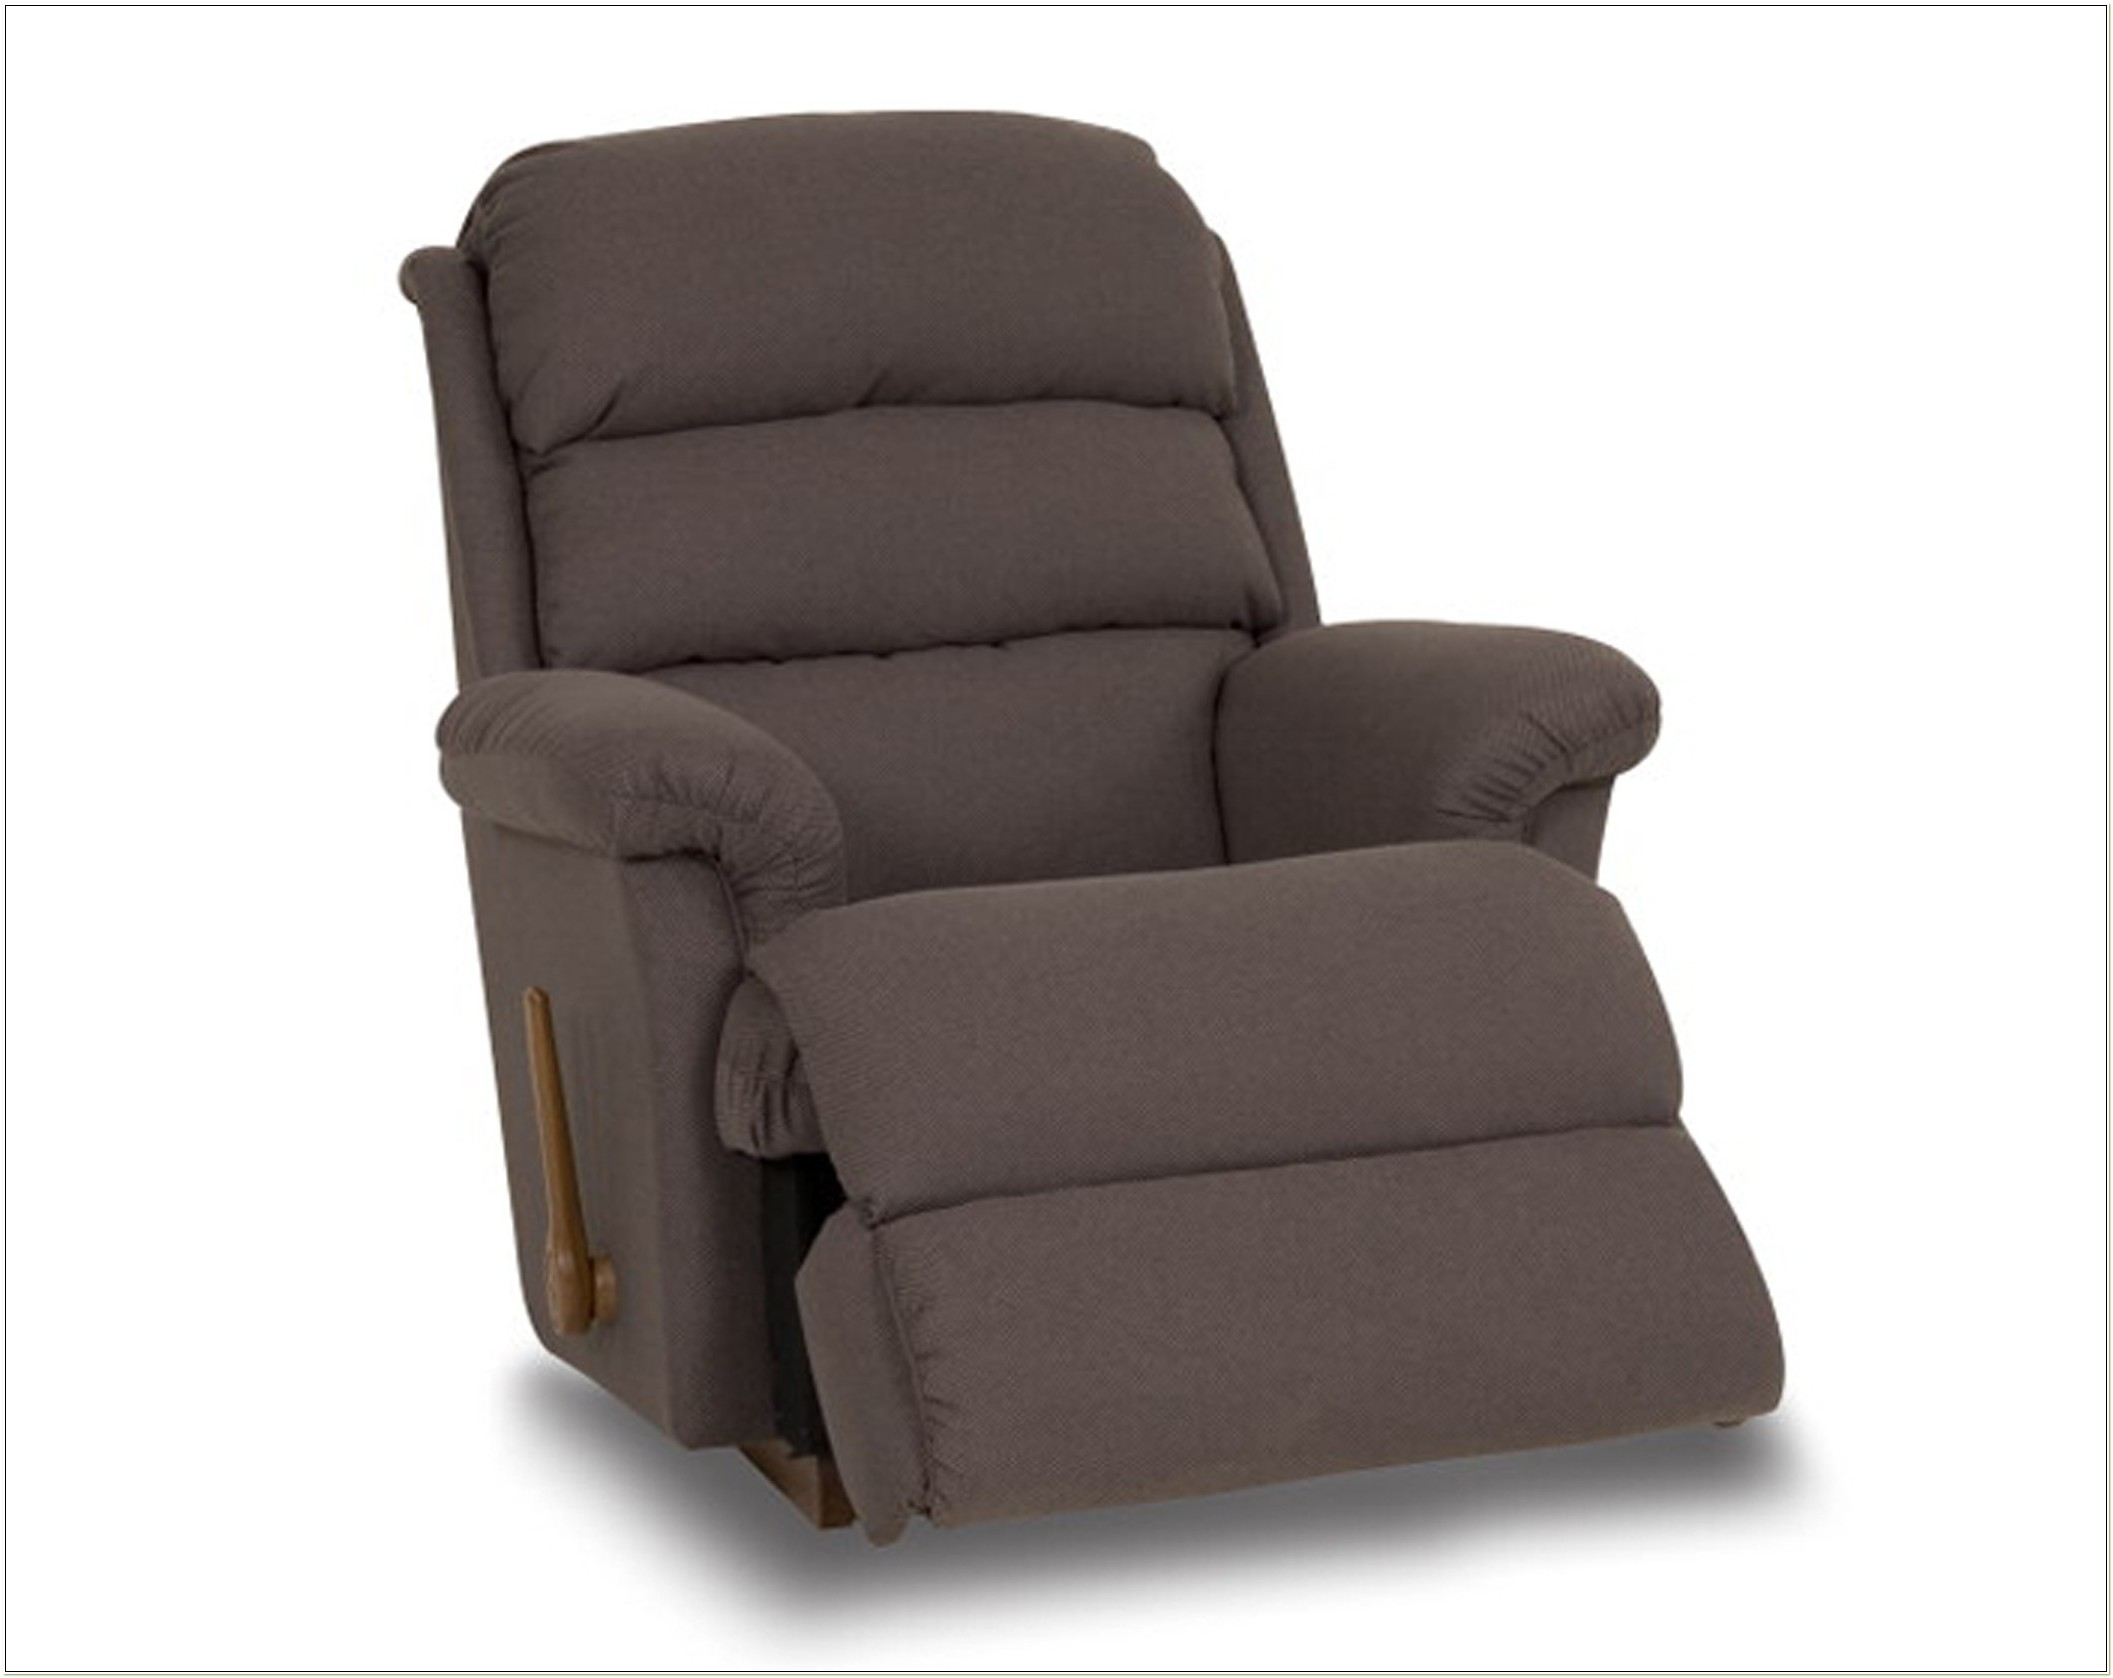 Swivel Rocker Recliner Chair Covers